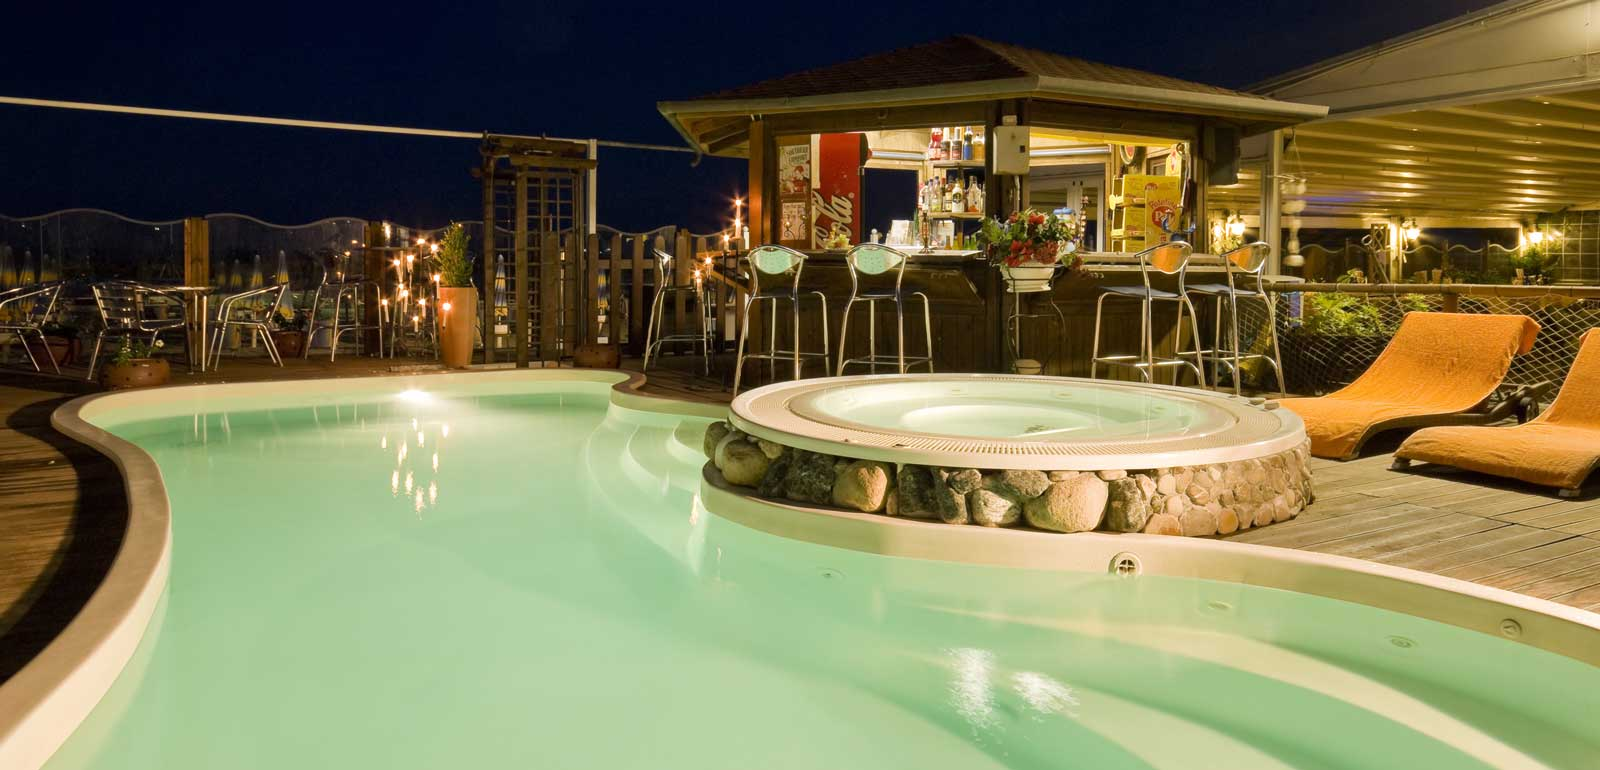 Piscina e Bar di notte, Hotel Estate